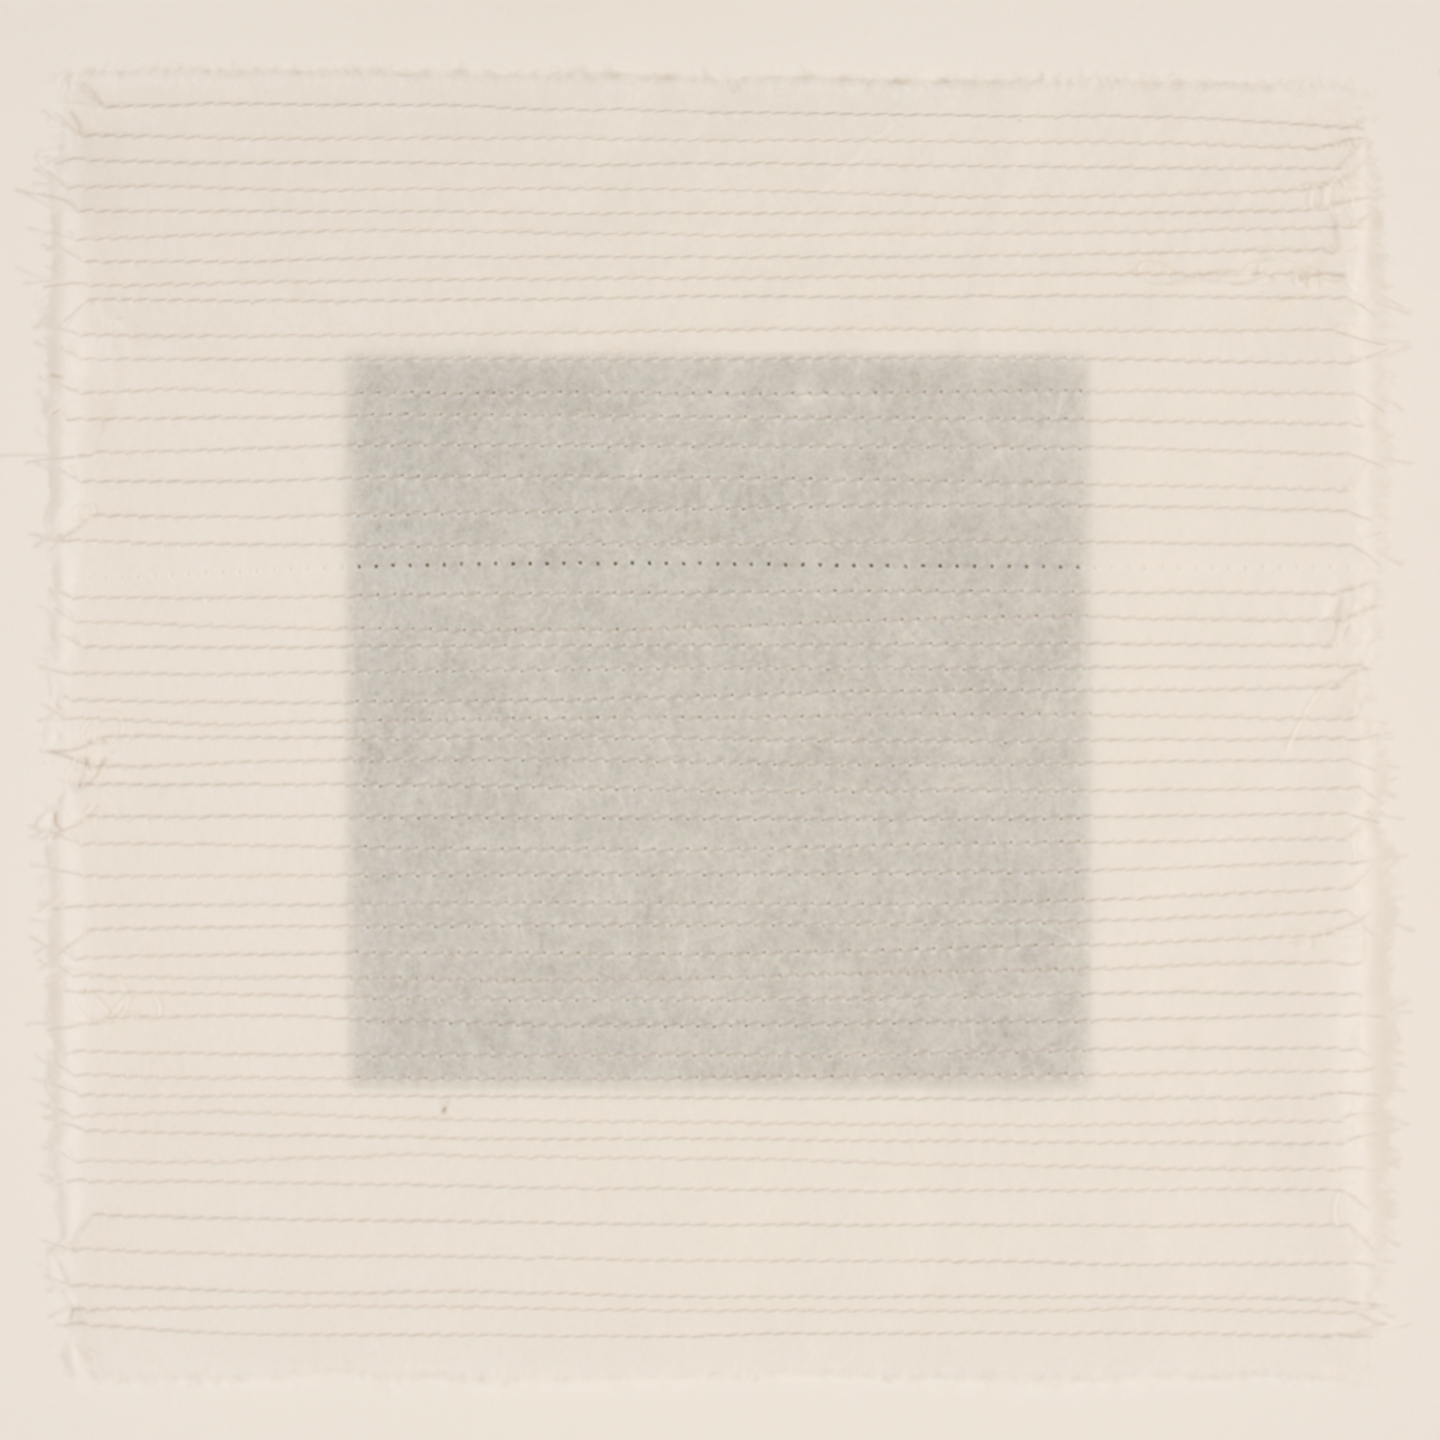 Stitched #4 - rice paper grid